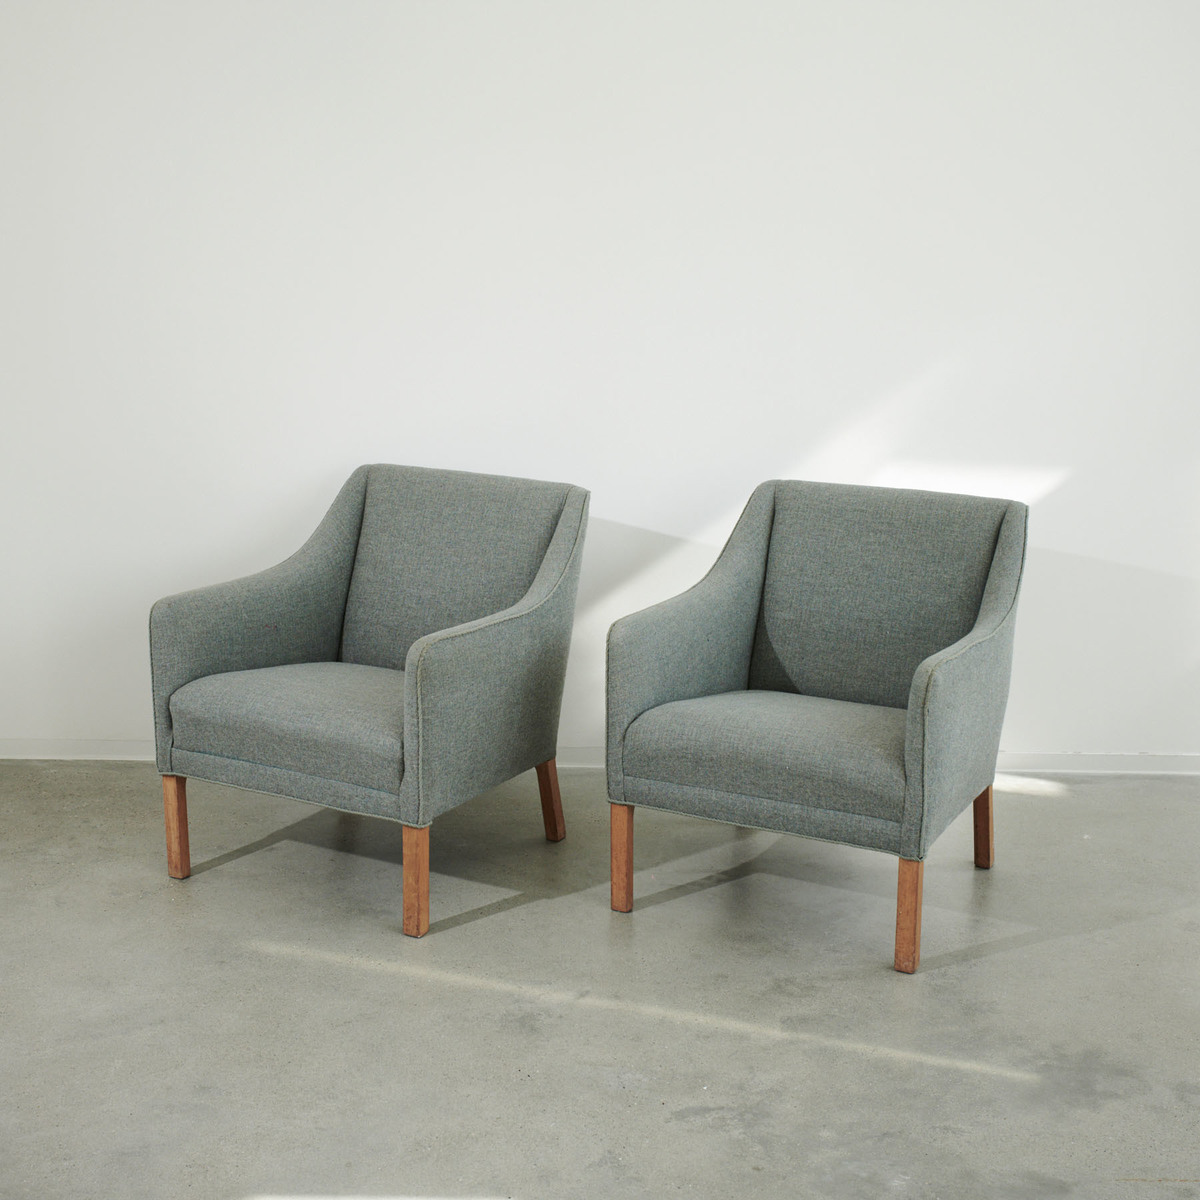 Pair of armchairs attributed to Ole Wanscher